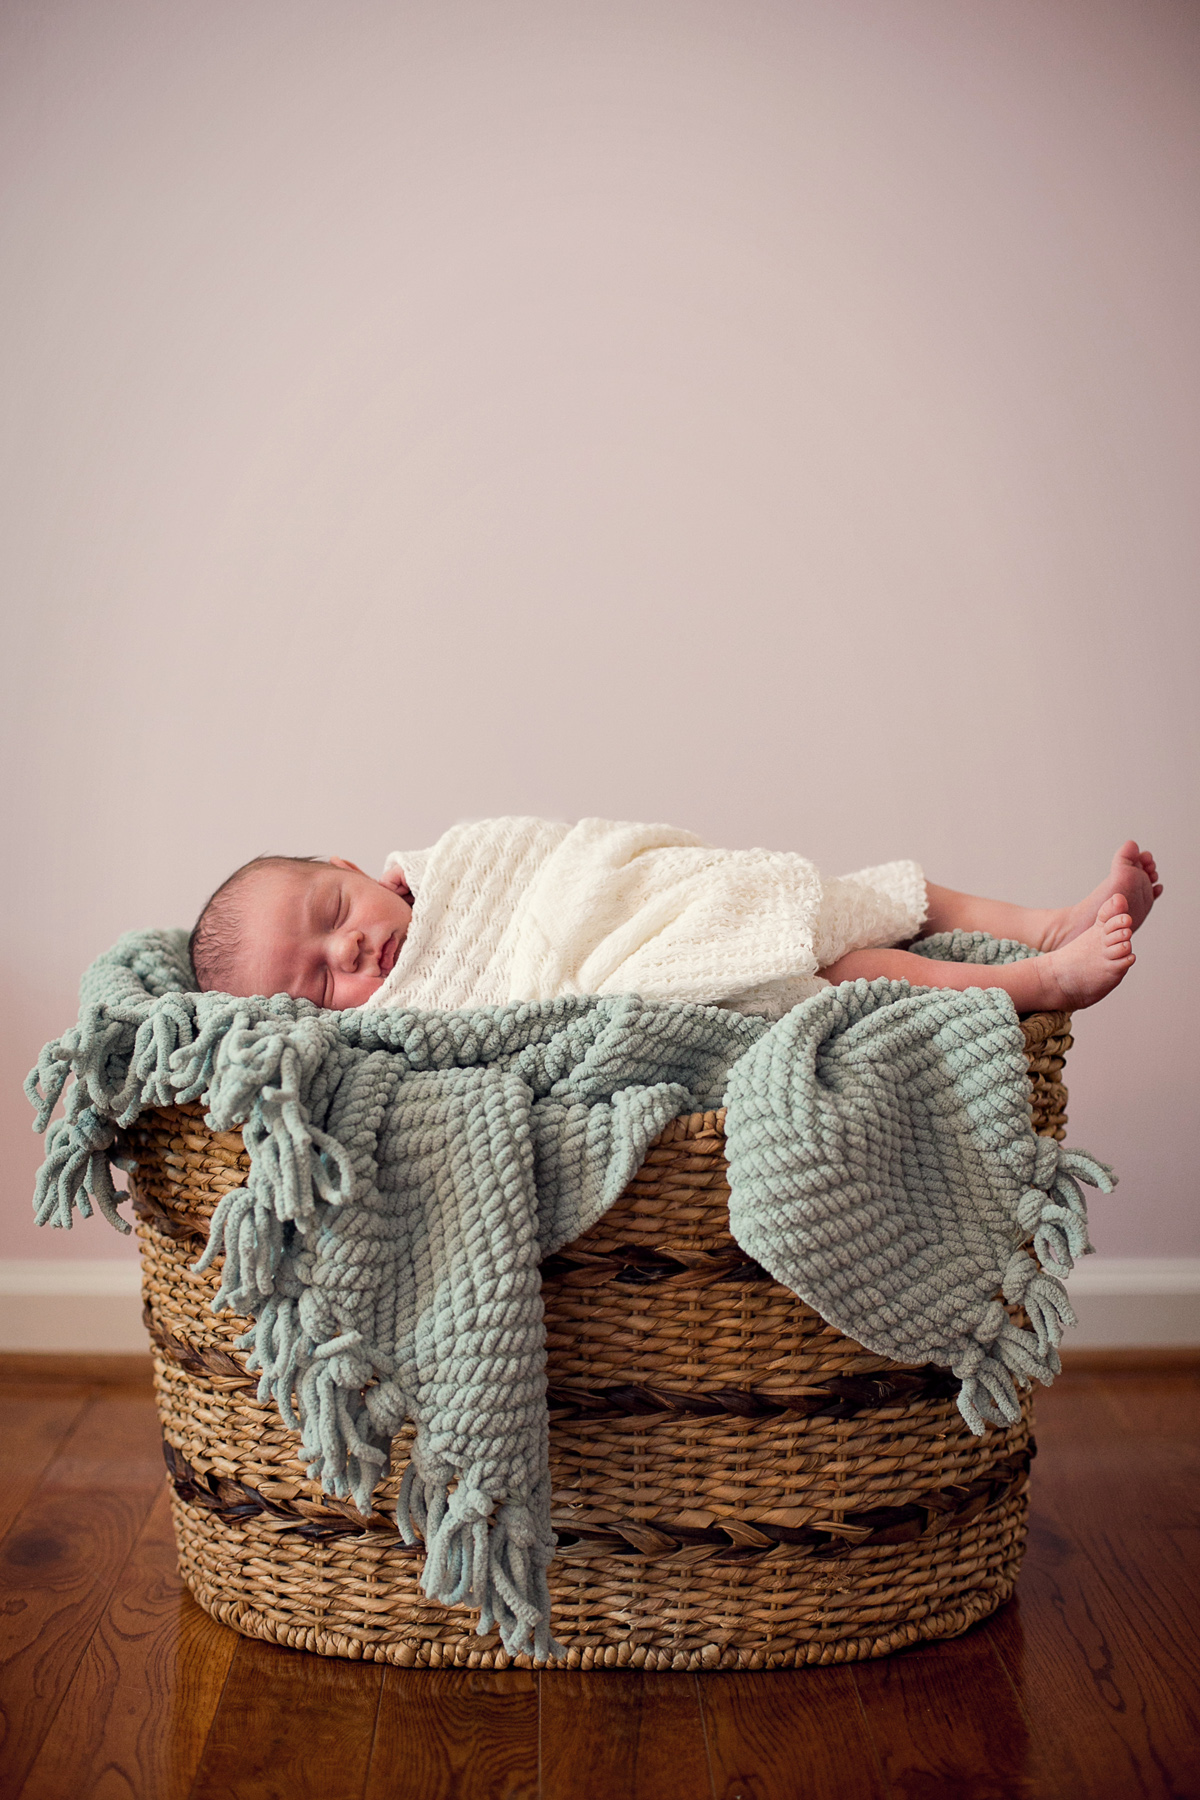 Peek_newborn-090413-055-recipe.jpg